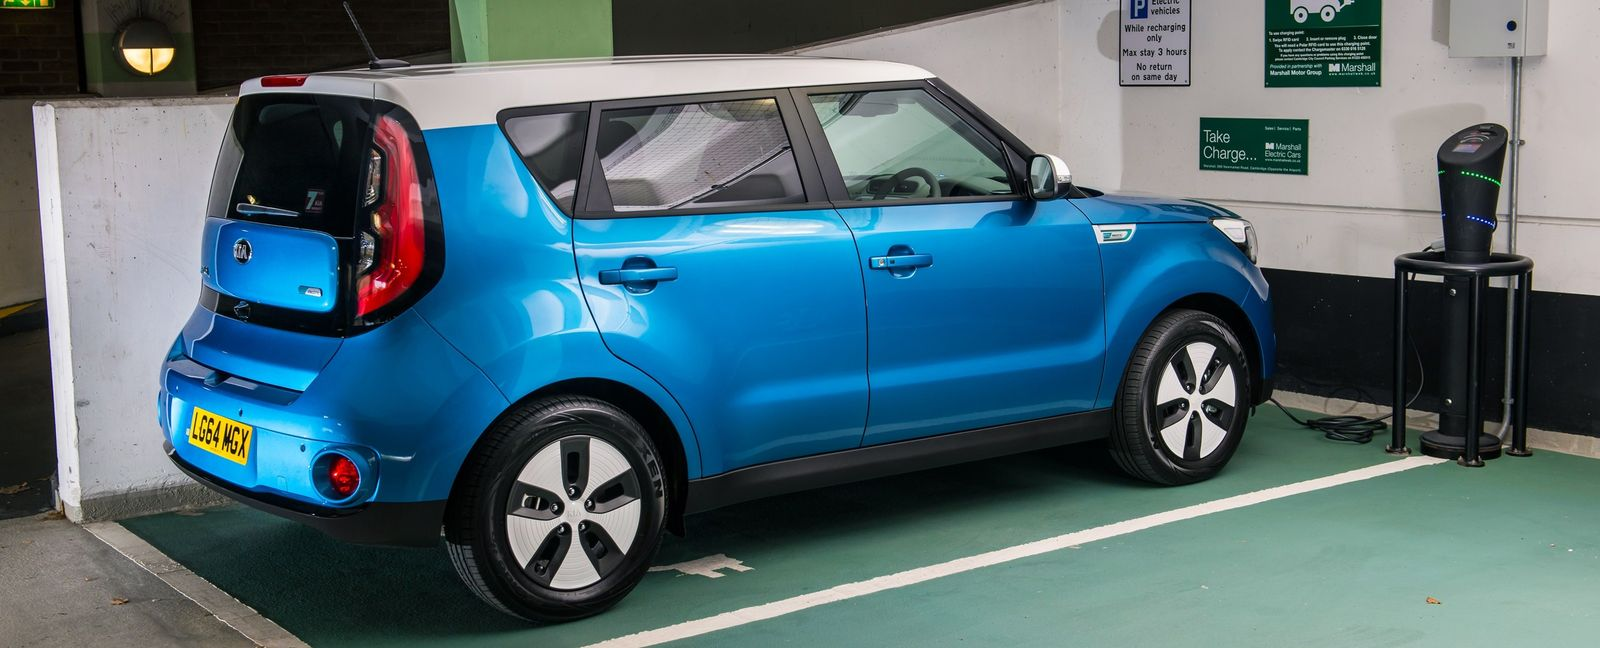 kia soul ev real world electric range tested and video carwow. Black Bedroom Furniture Sets. Home Design Ideas